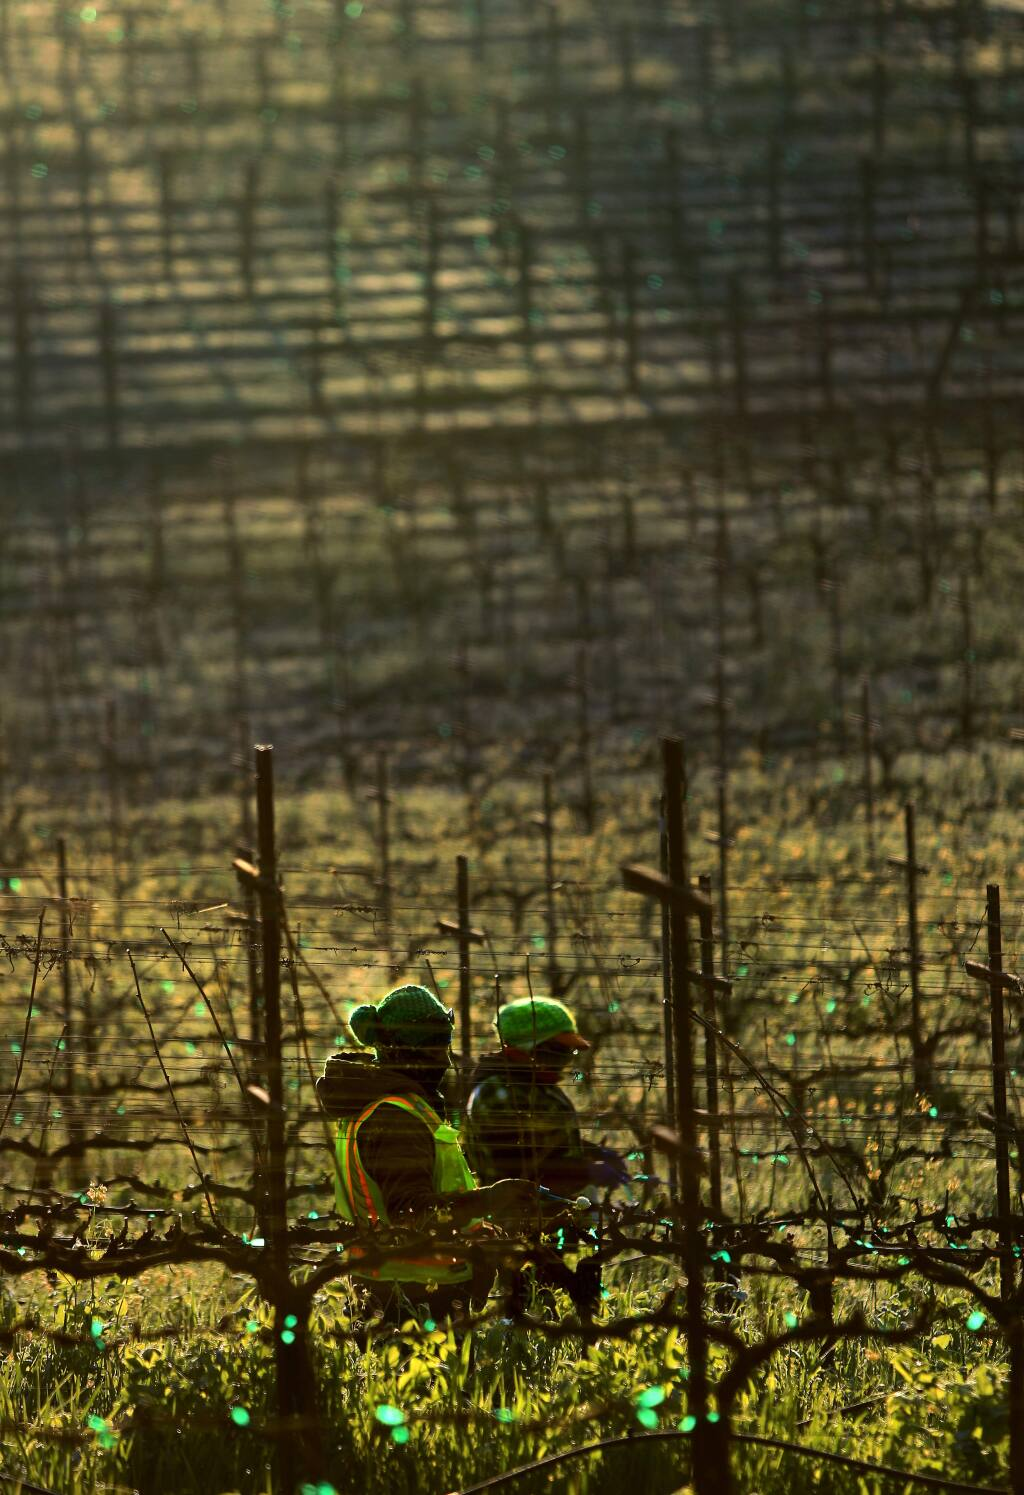 Vineyard workers from Redwood Empire Vineyard Management inc. work in a vineyard along Westside Road in Healdsburg, Tuesday Feb. 20, 2018 bundled up against the cold morning air. (Kent Porter / The Press Democrat) 2018